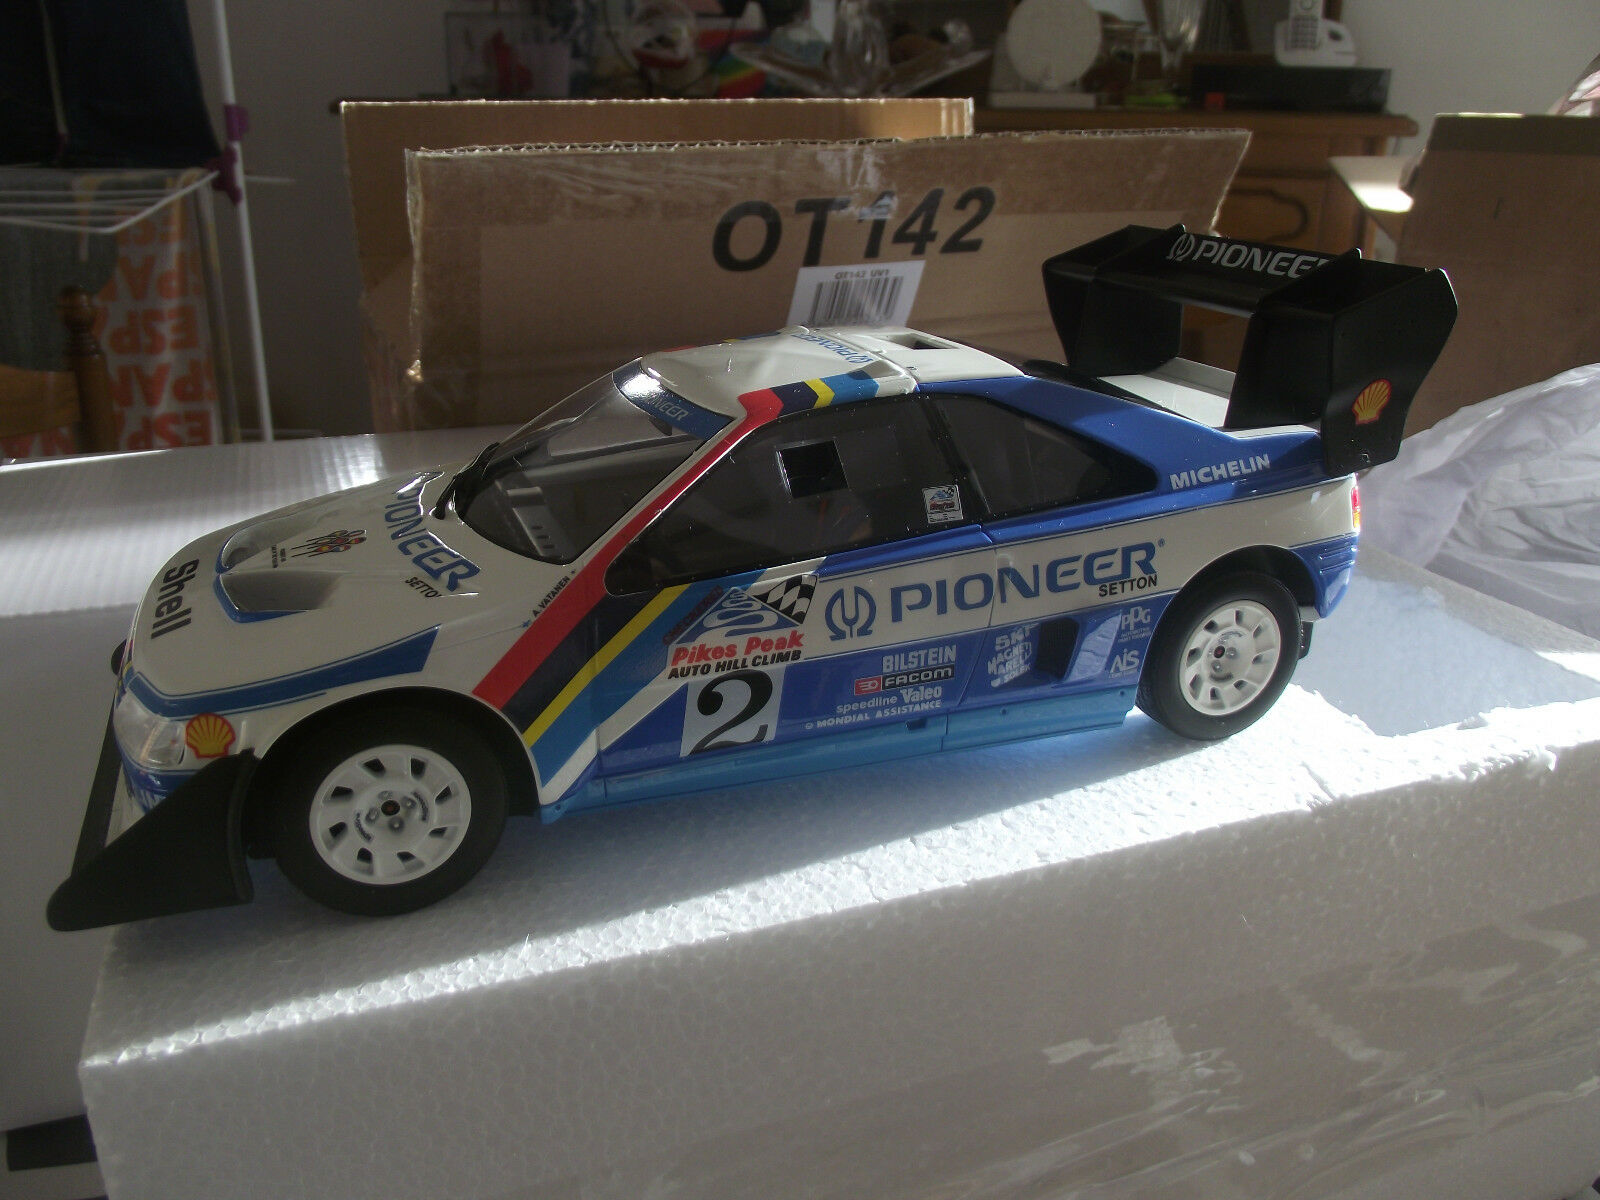 Peugeot 405 pikes pikes pikes peak vatanen    pikes peak 1988 1/18  OTTO142 | Up-to-date Styling  54b1bb